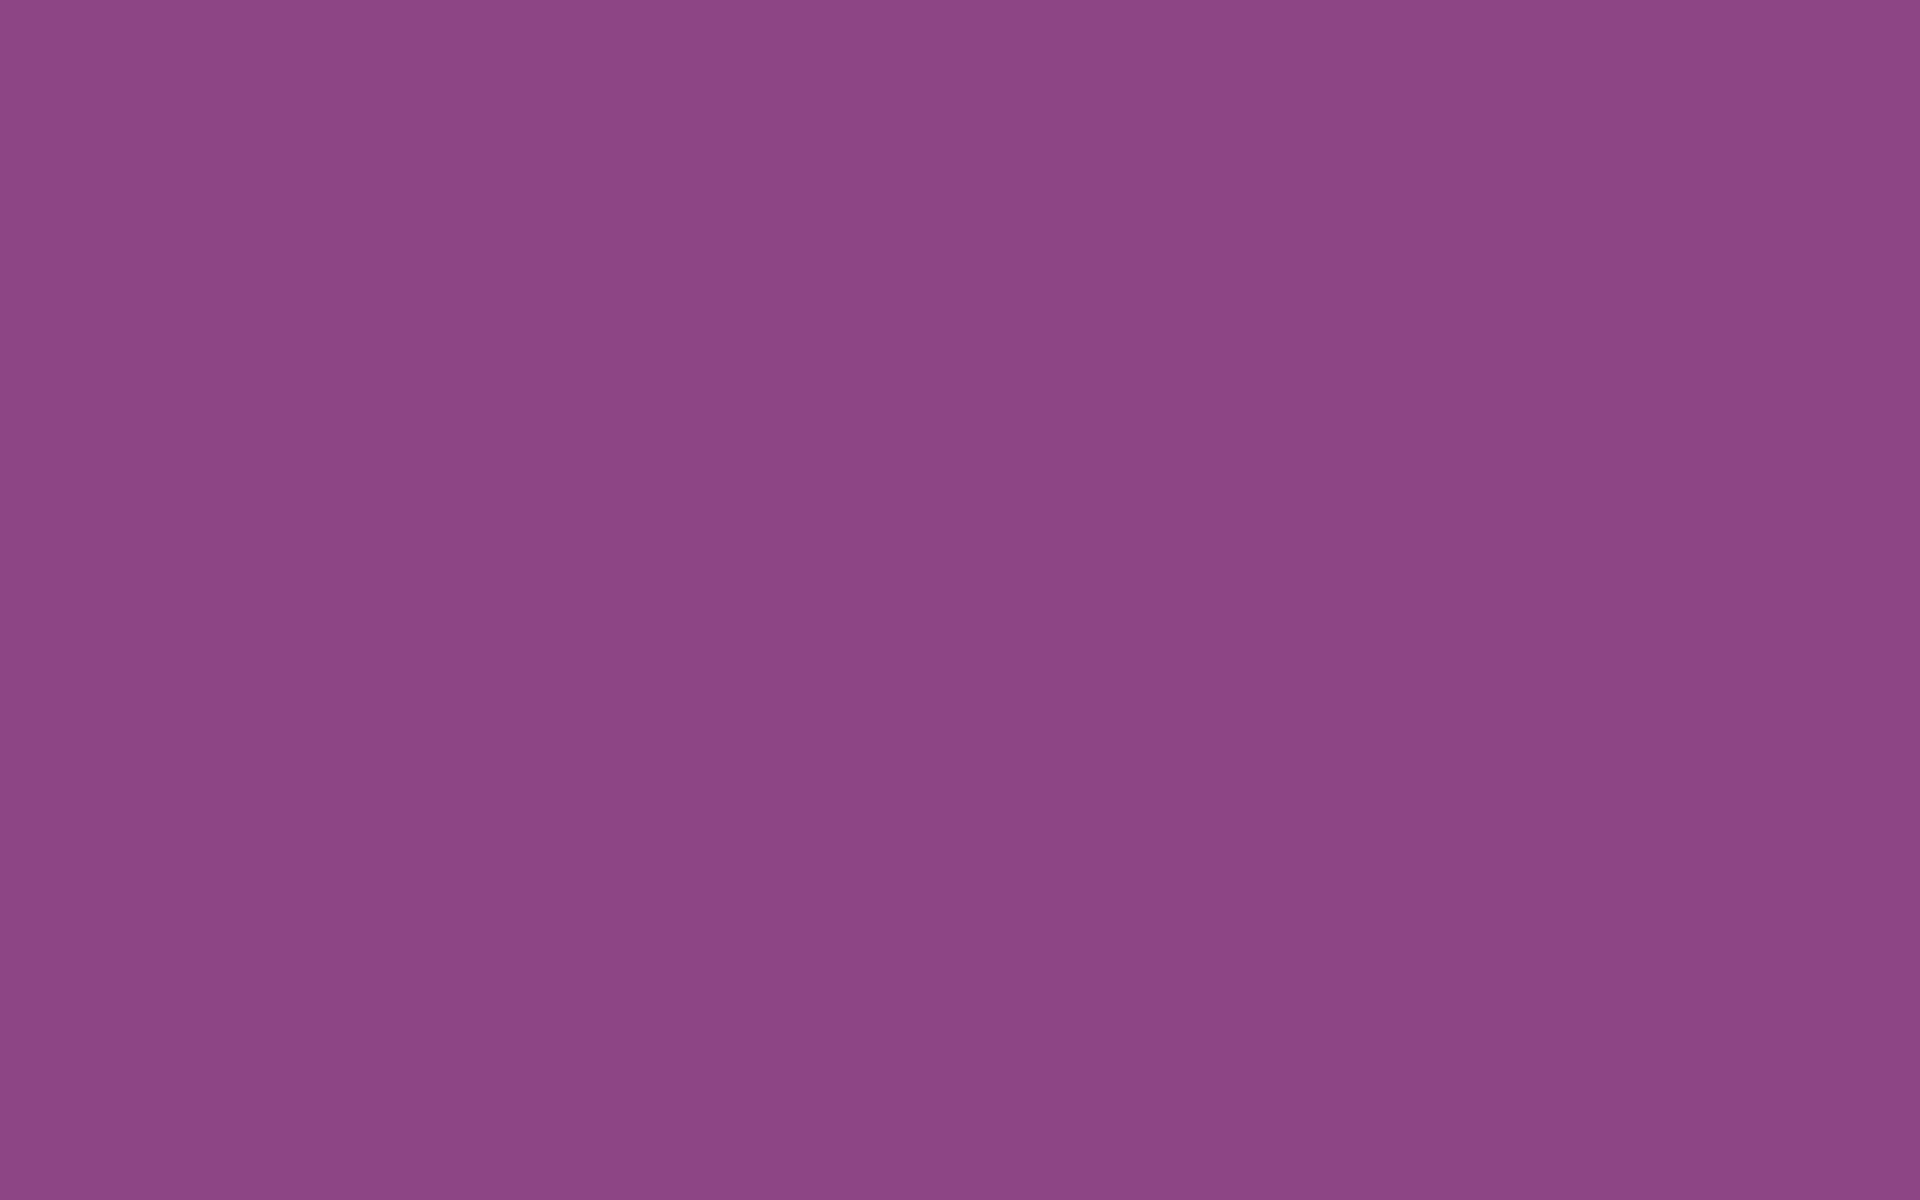 1920x1200 Plum Traditional Solid Color Background